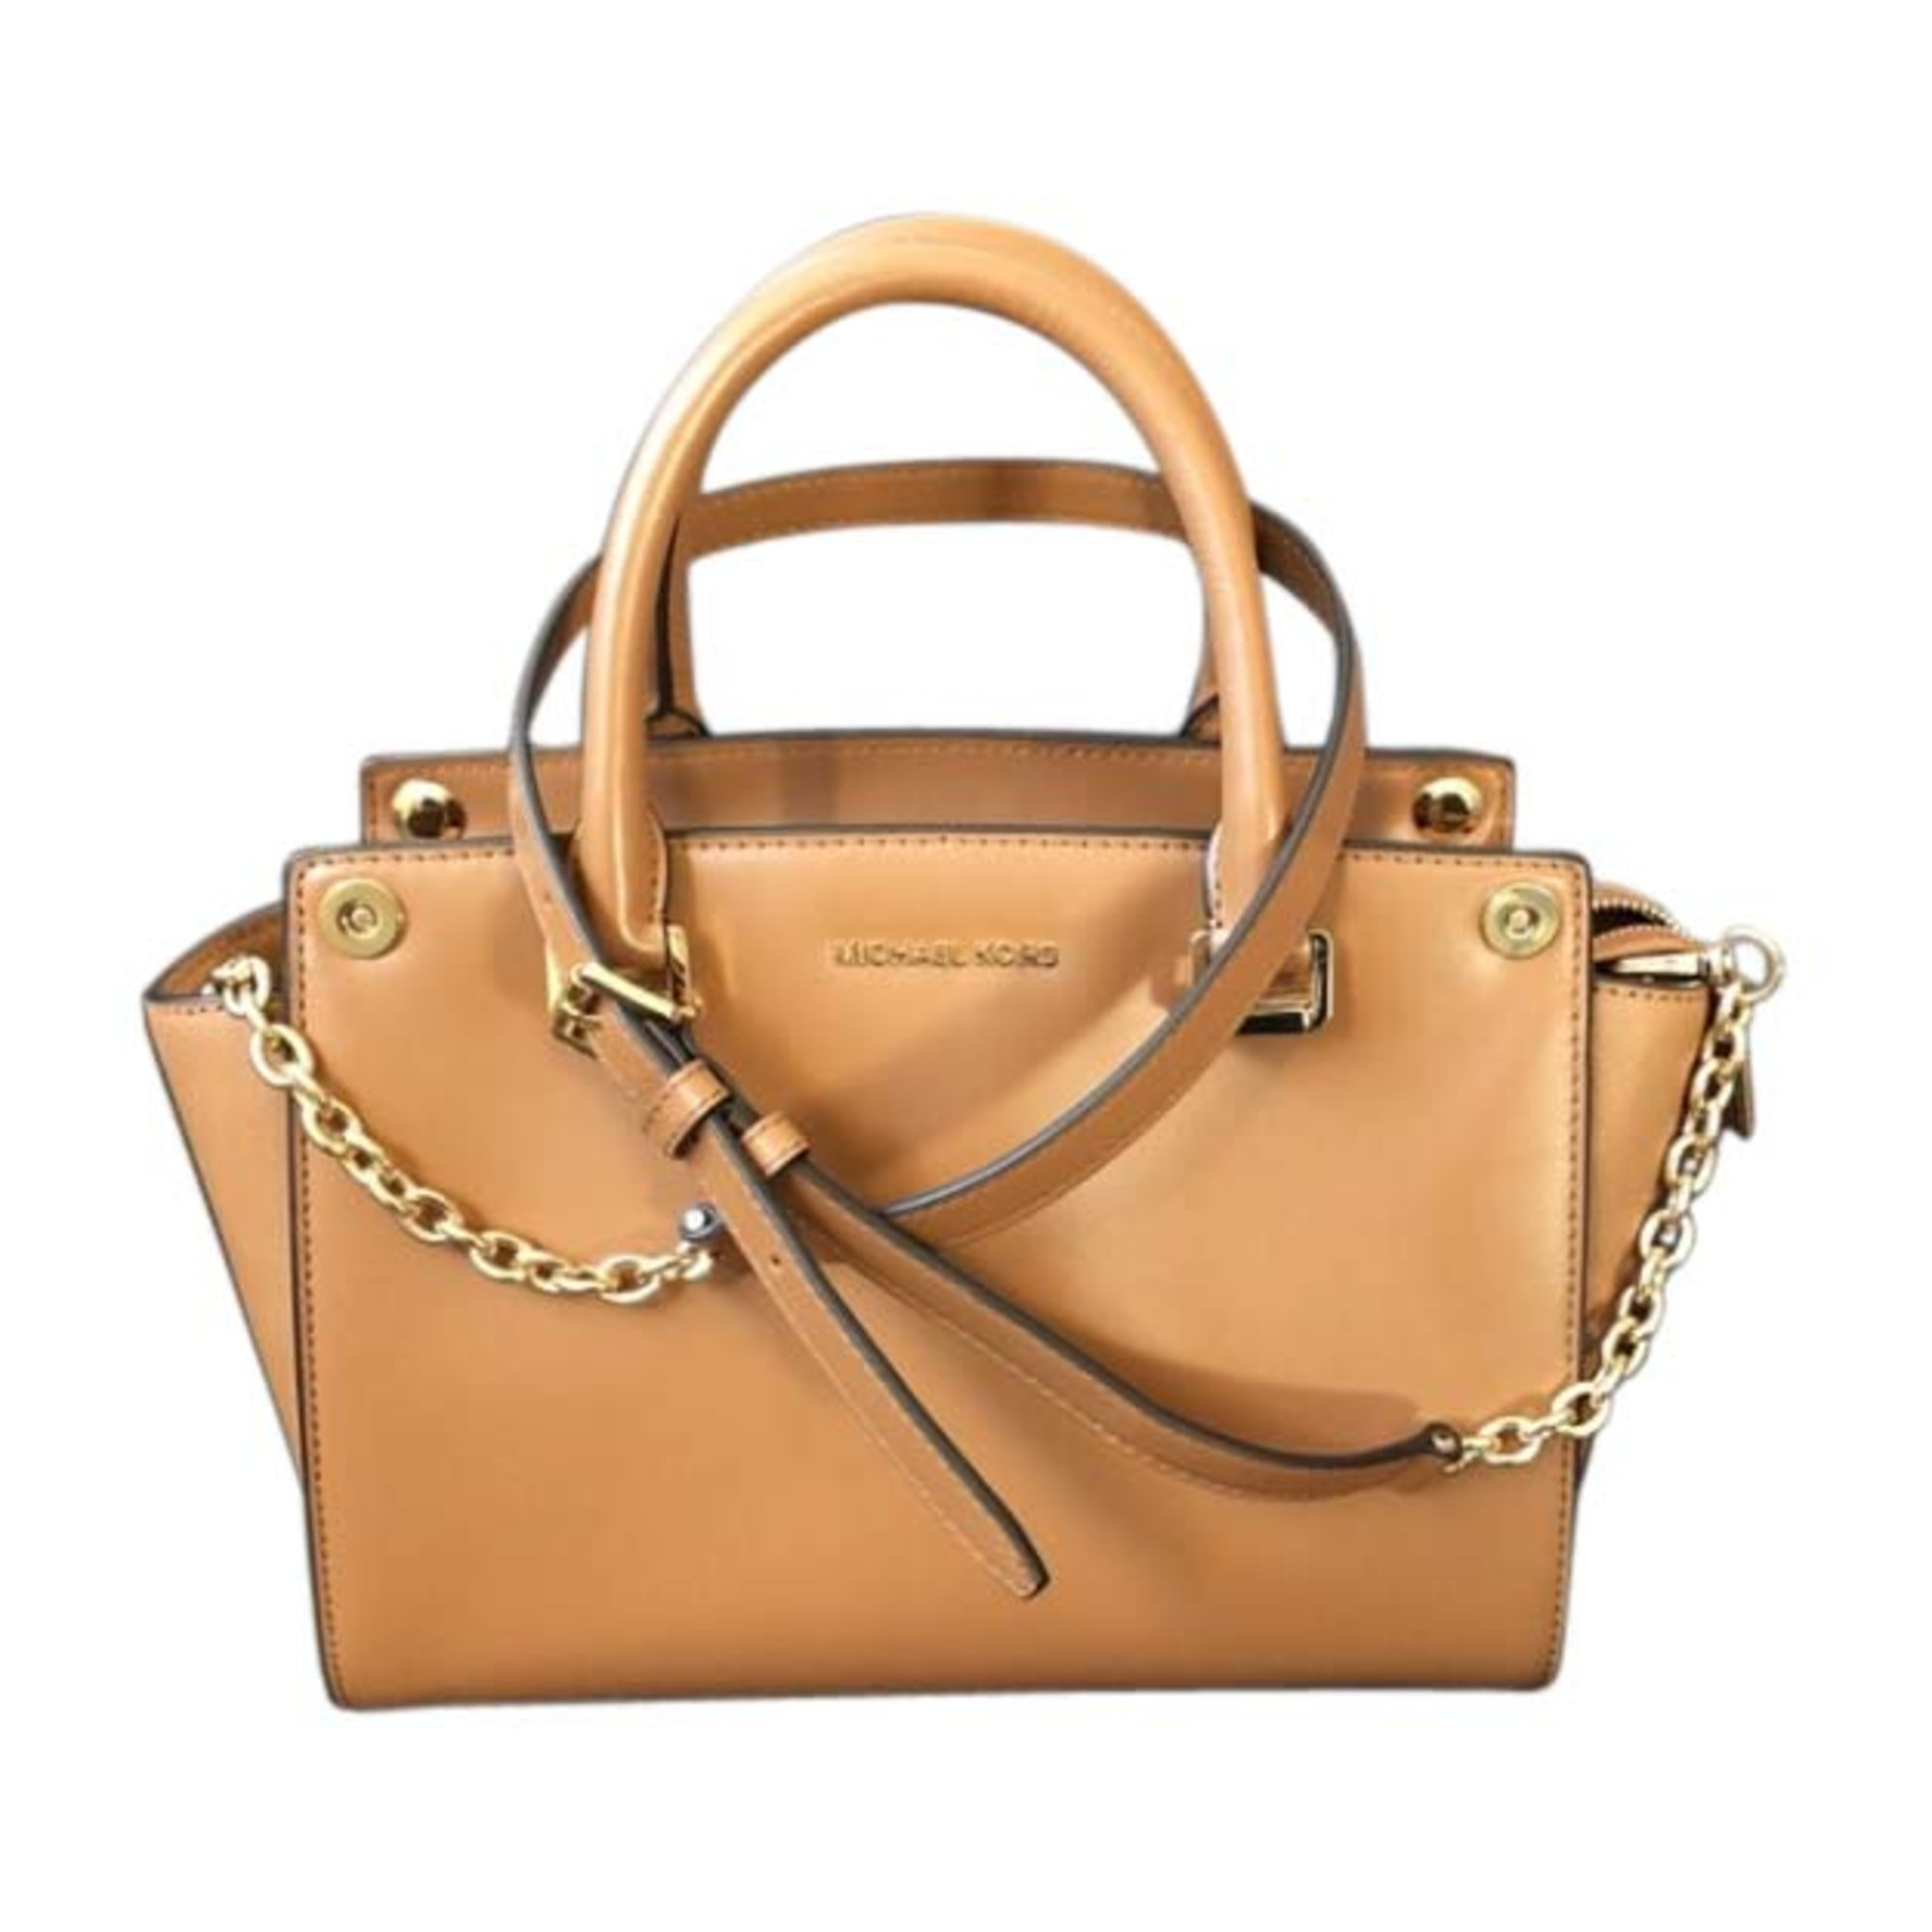 Leather Handbag MICHAEL KORS Beige, camel